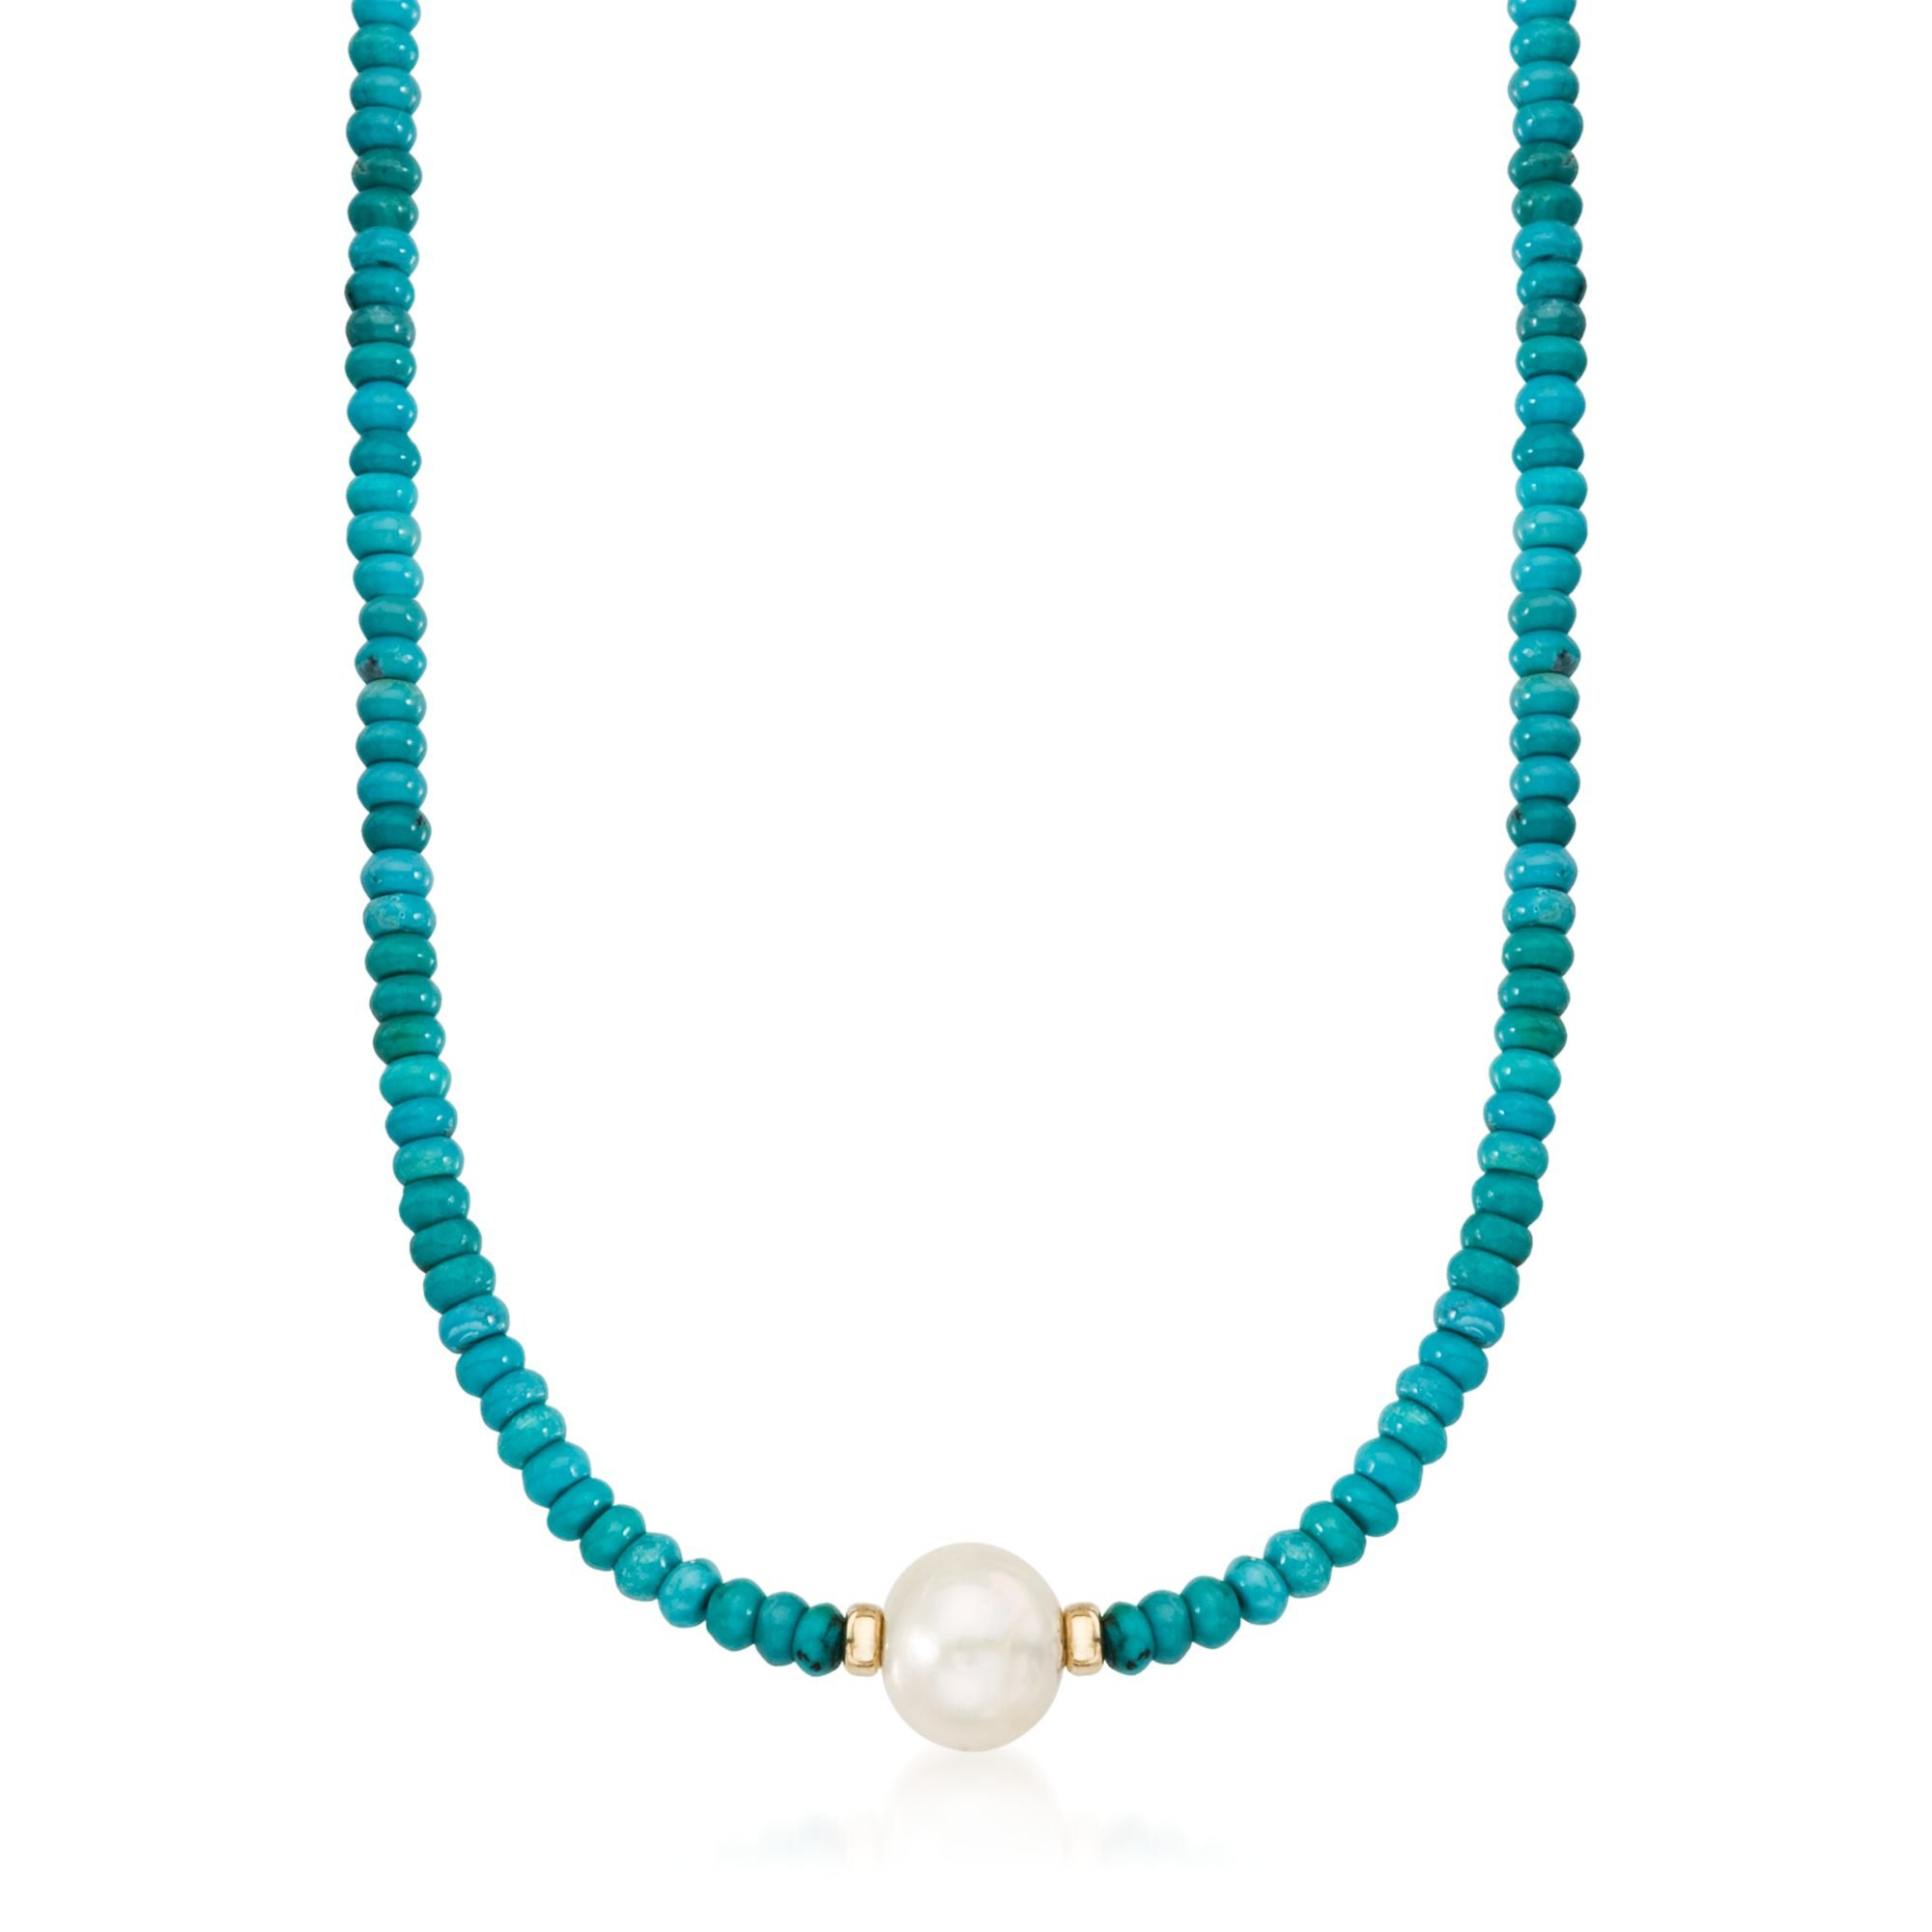 Ross-Simons Turquoise Bead and 12-13mm Cultured Pearl Necklace in 14kt Yellow Gold